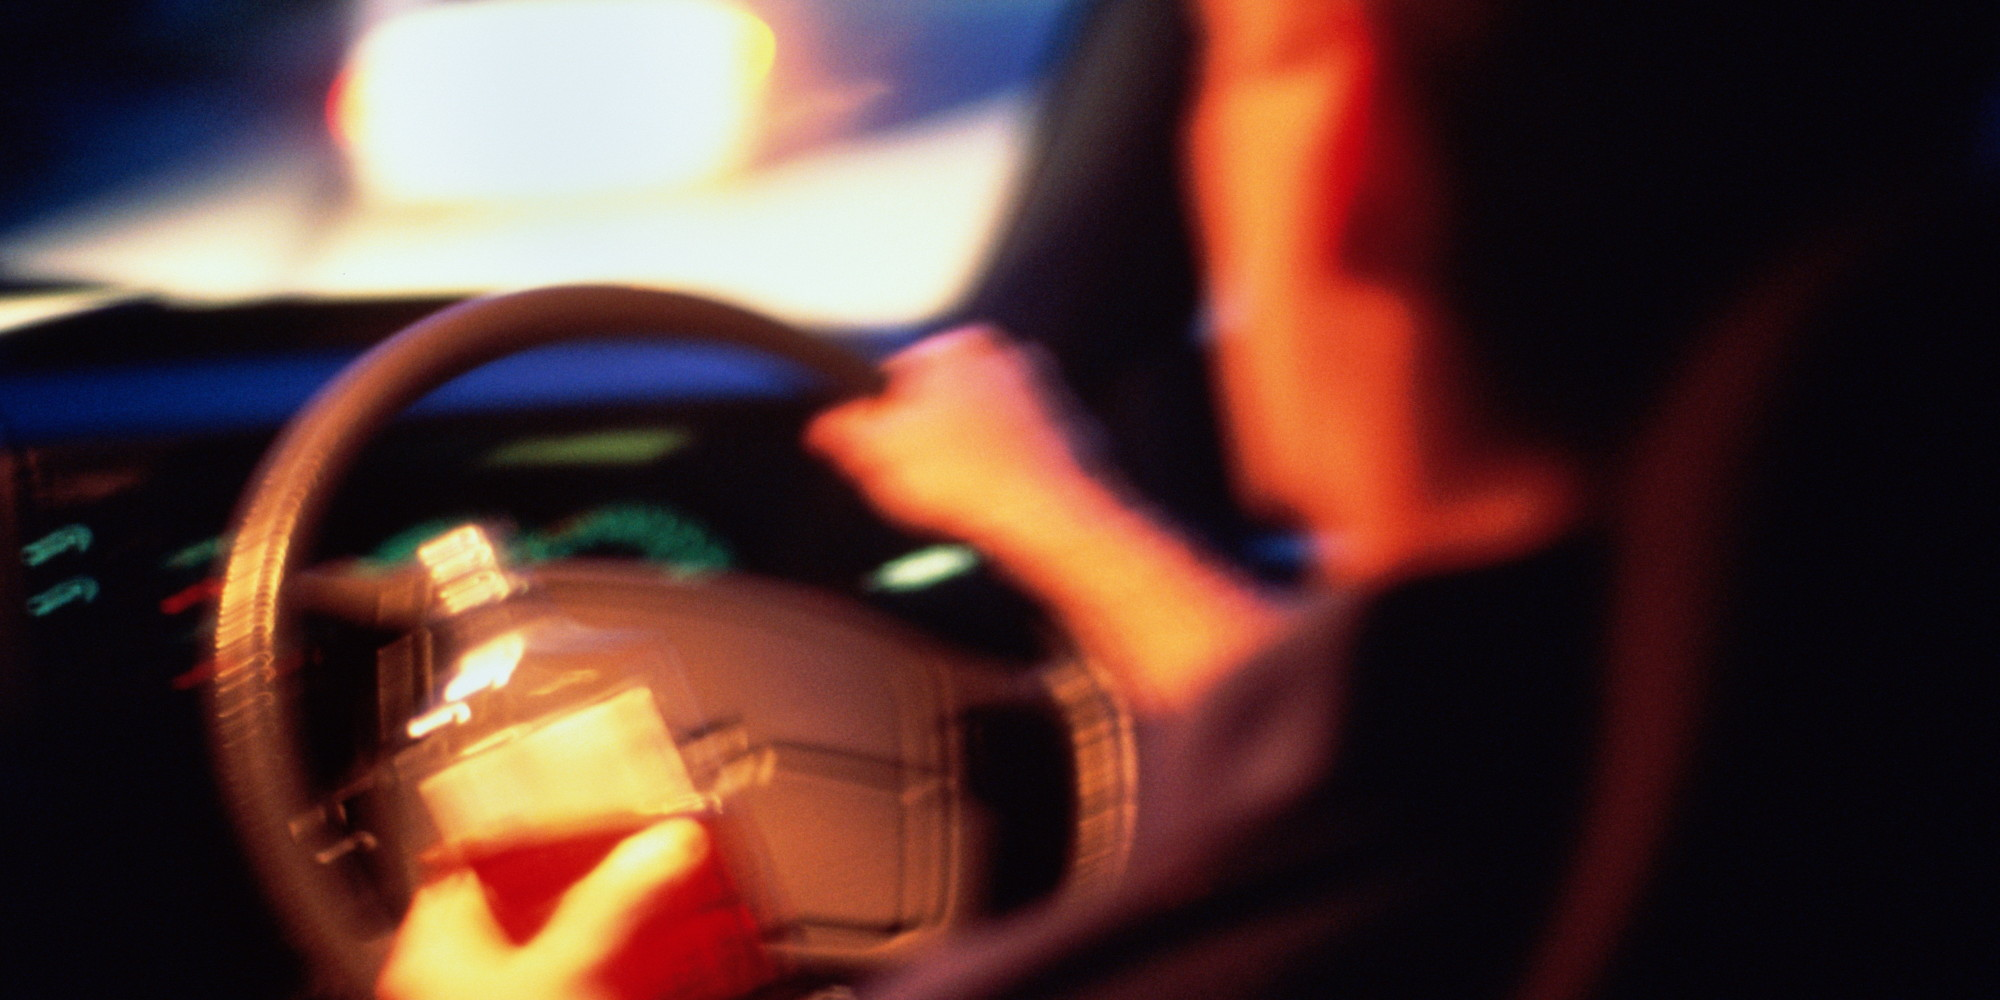 an analysis of the penalties for teens that drink and drive in the united states The laws and regulations aimed at reducing the likelihood that teens in the us drink and drive  than in the united states  in penalties was one.